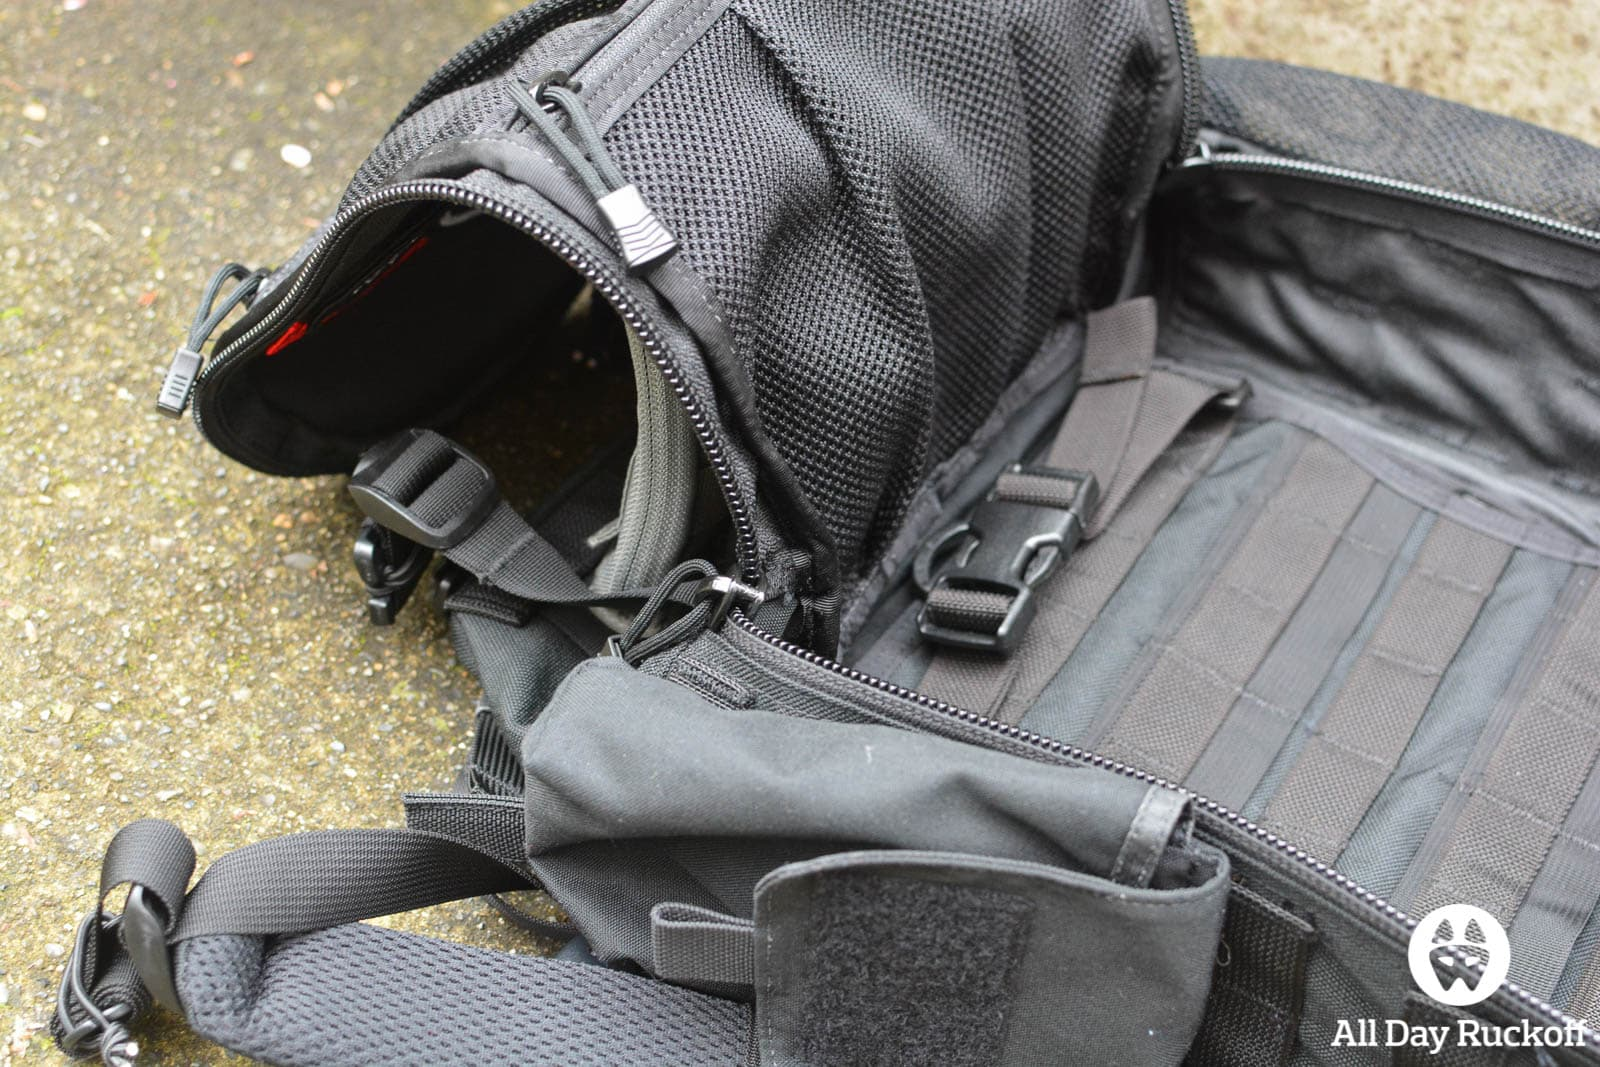 Triple Aught Design Litespeed Review - Near Complete Opening Inside